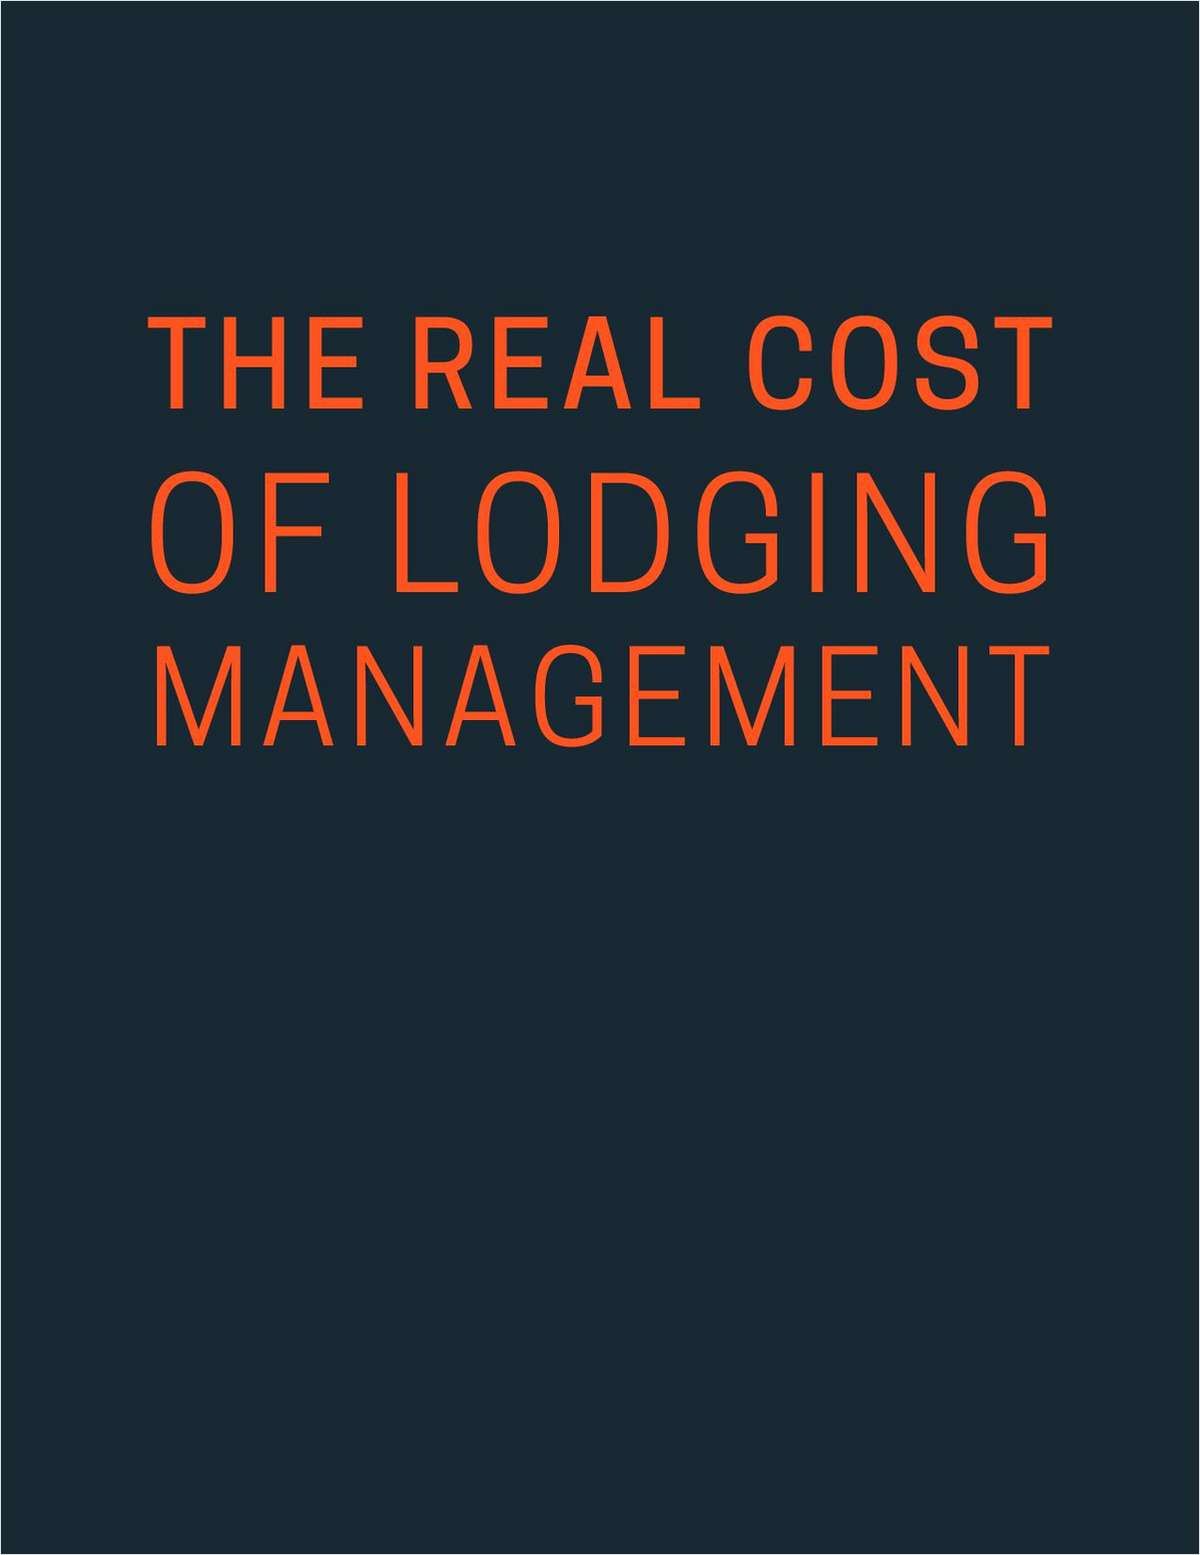 The Real Cost of Lodging Management